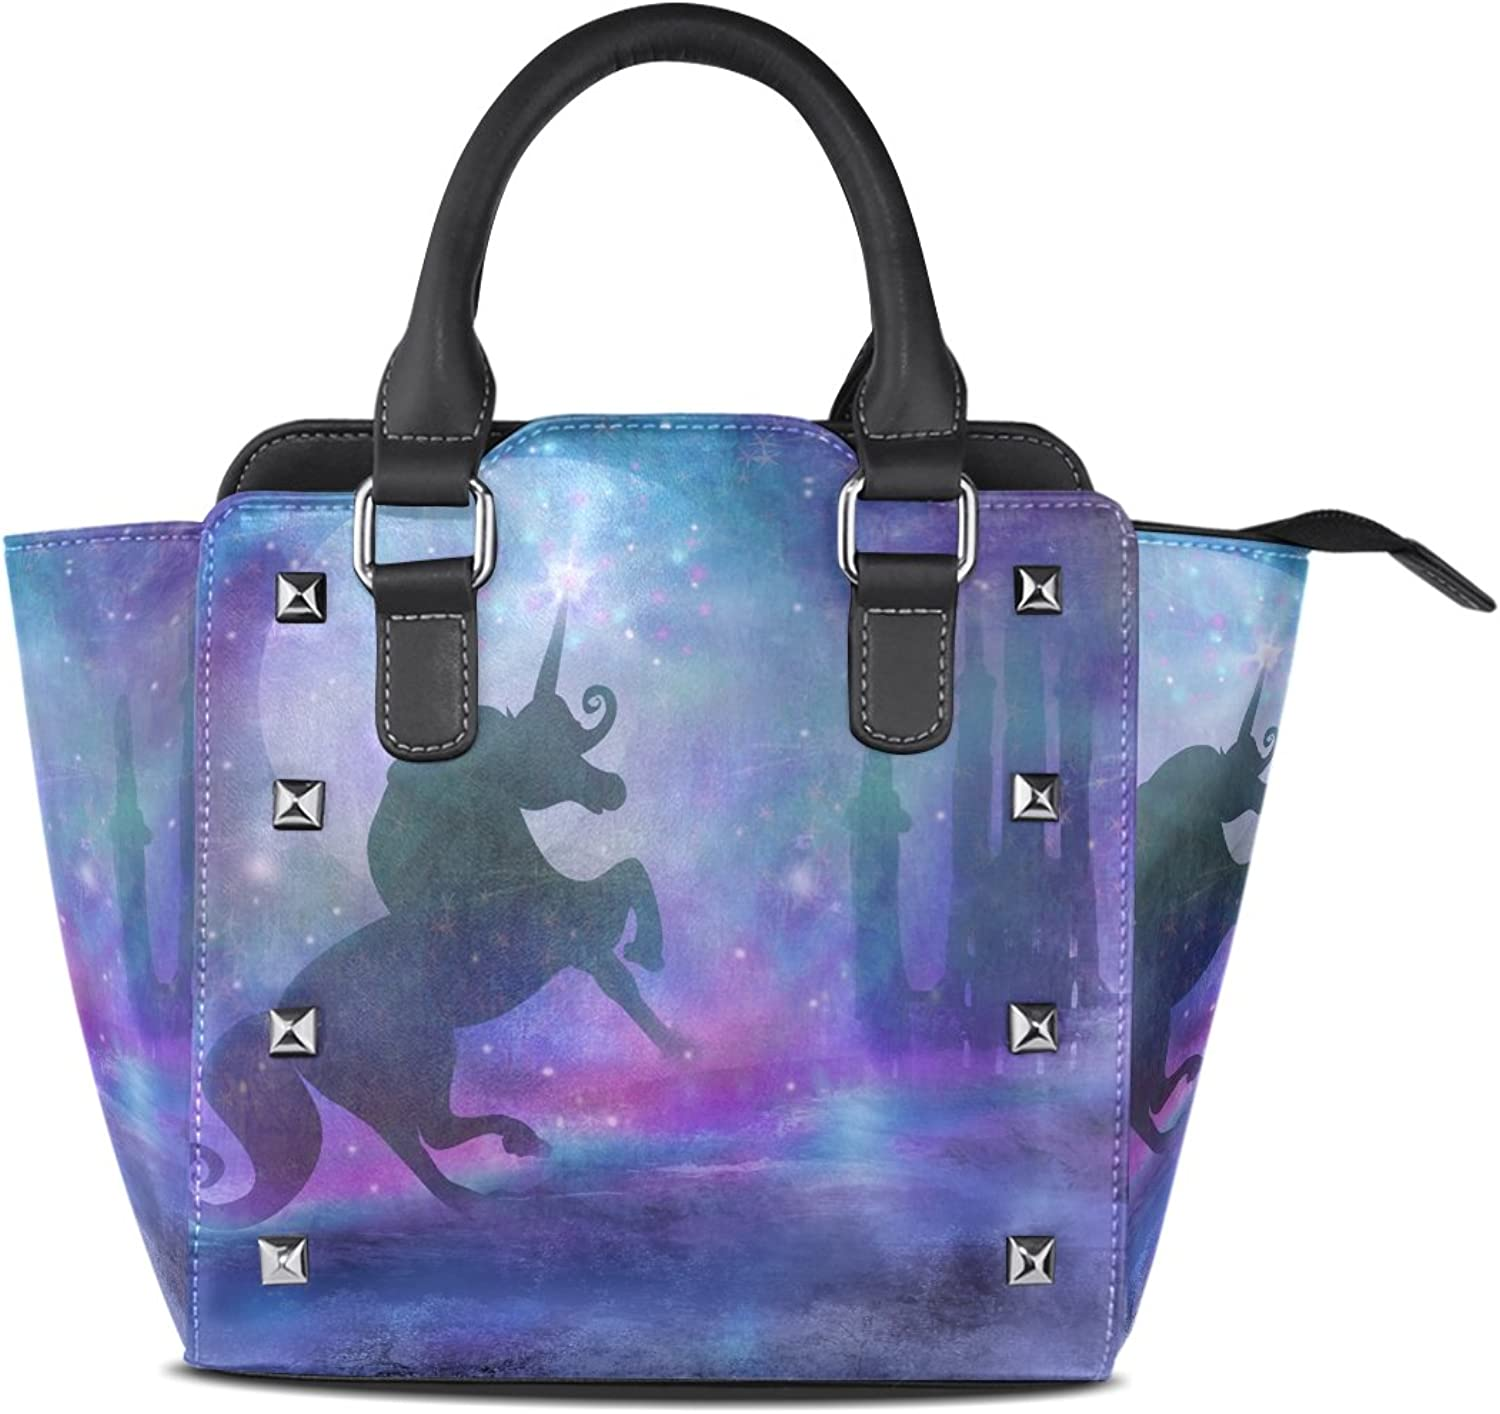 Sunlome Castle and Unicorn Print Handbags Women's PU Leather Top-Handle Shoulder Bags